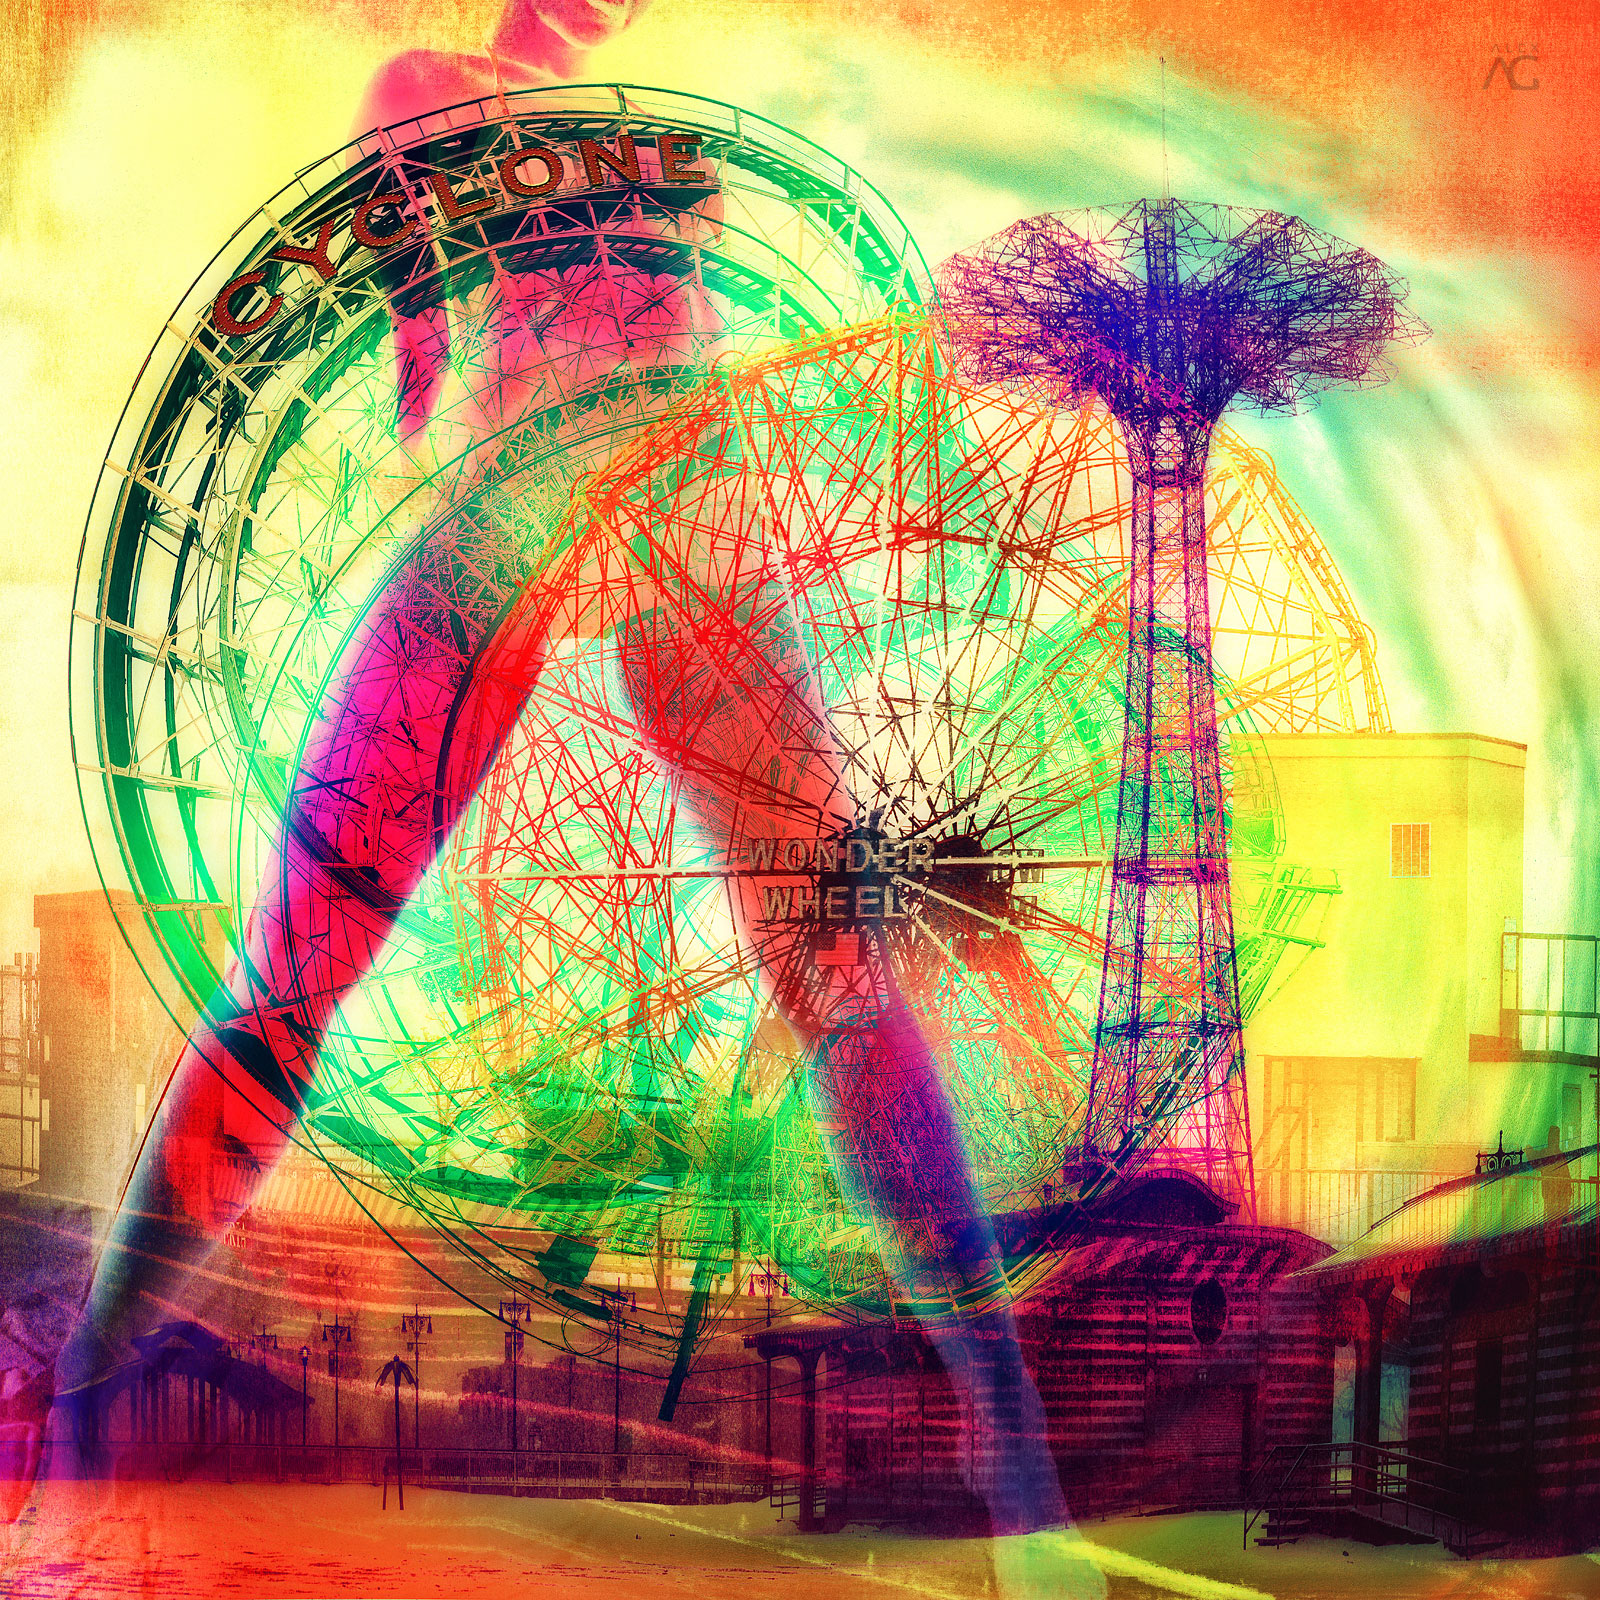 90_CloseupWOnderWheel_ConeyIsland_variable_ChannelsMixed_1600_SummerIn90s